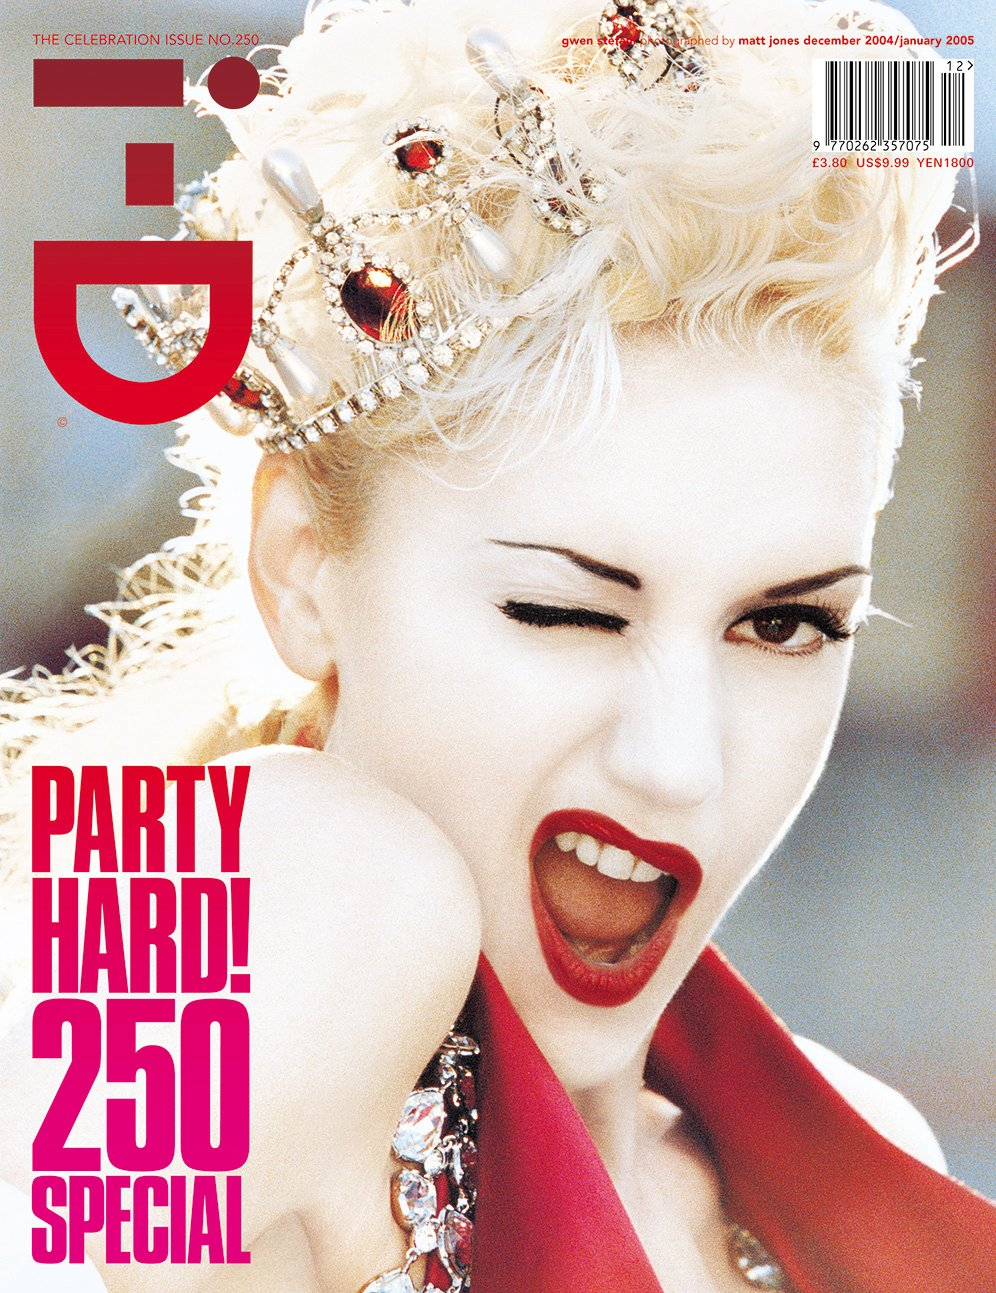 250. THE CELEBRATION ISSUE